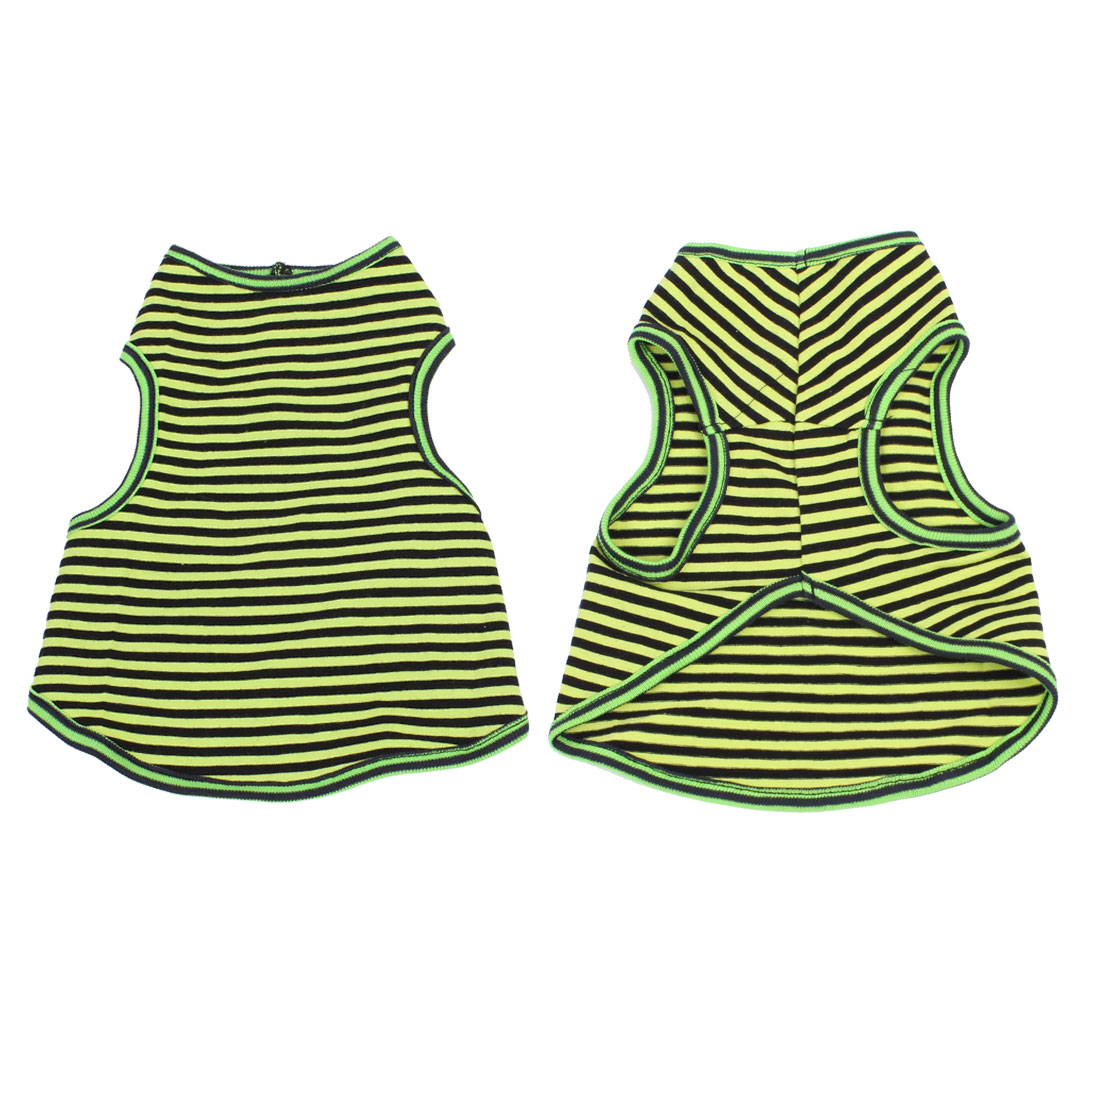 Stripes Pattern Dog Chihuaha Summer Tee Shirt Pet Puppy Clothes Green Black S